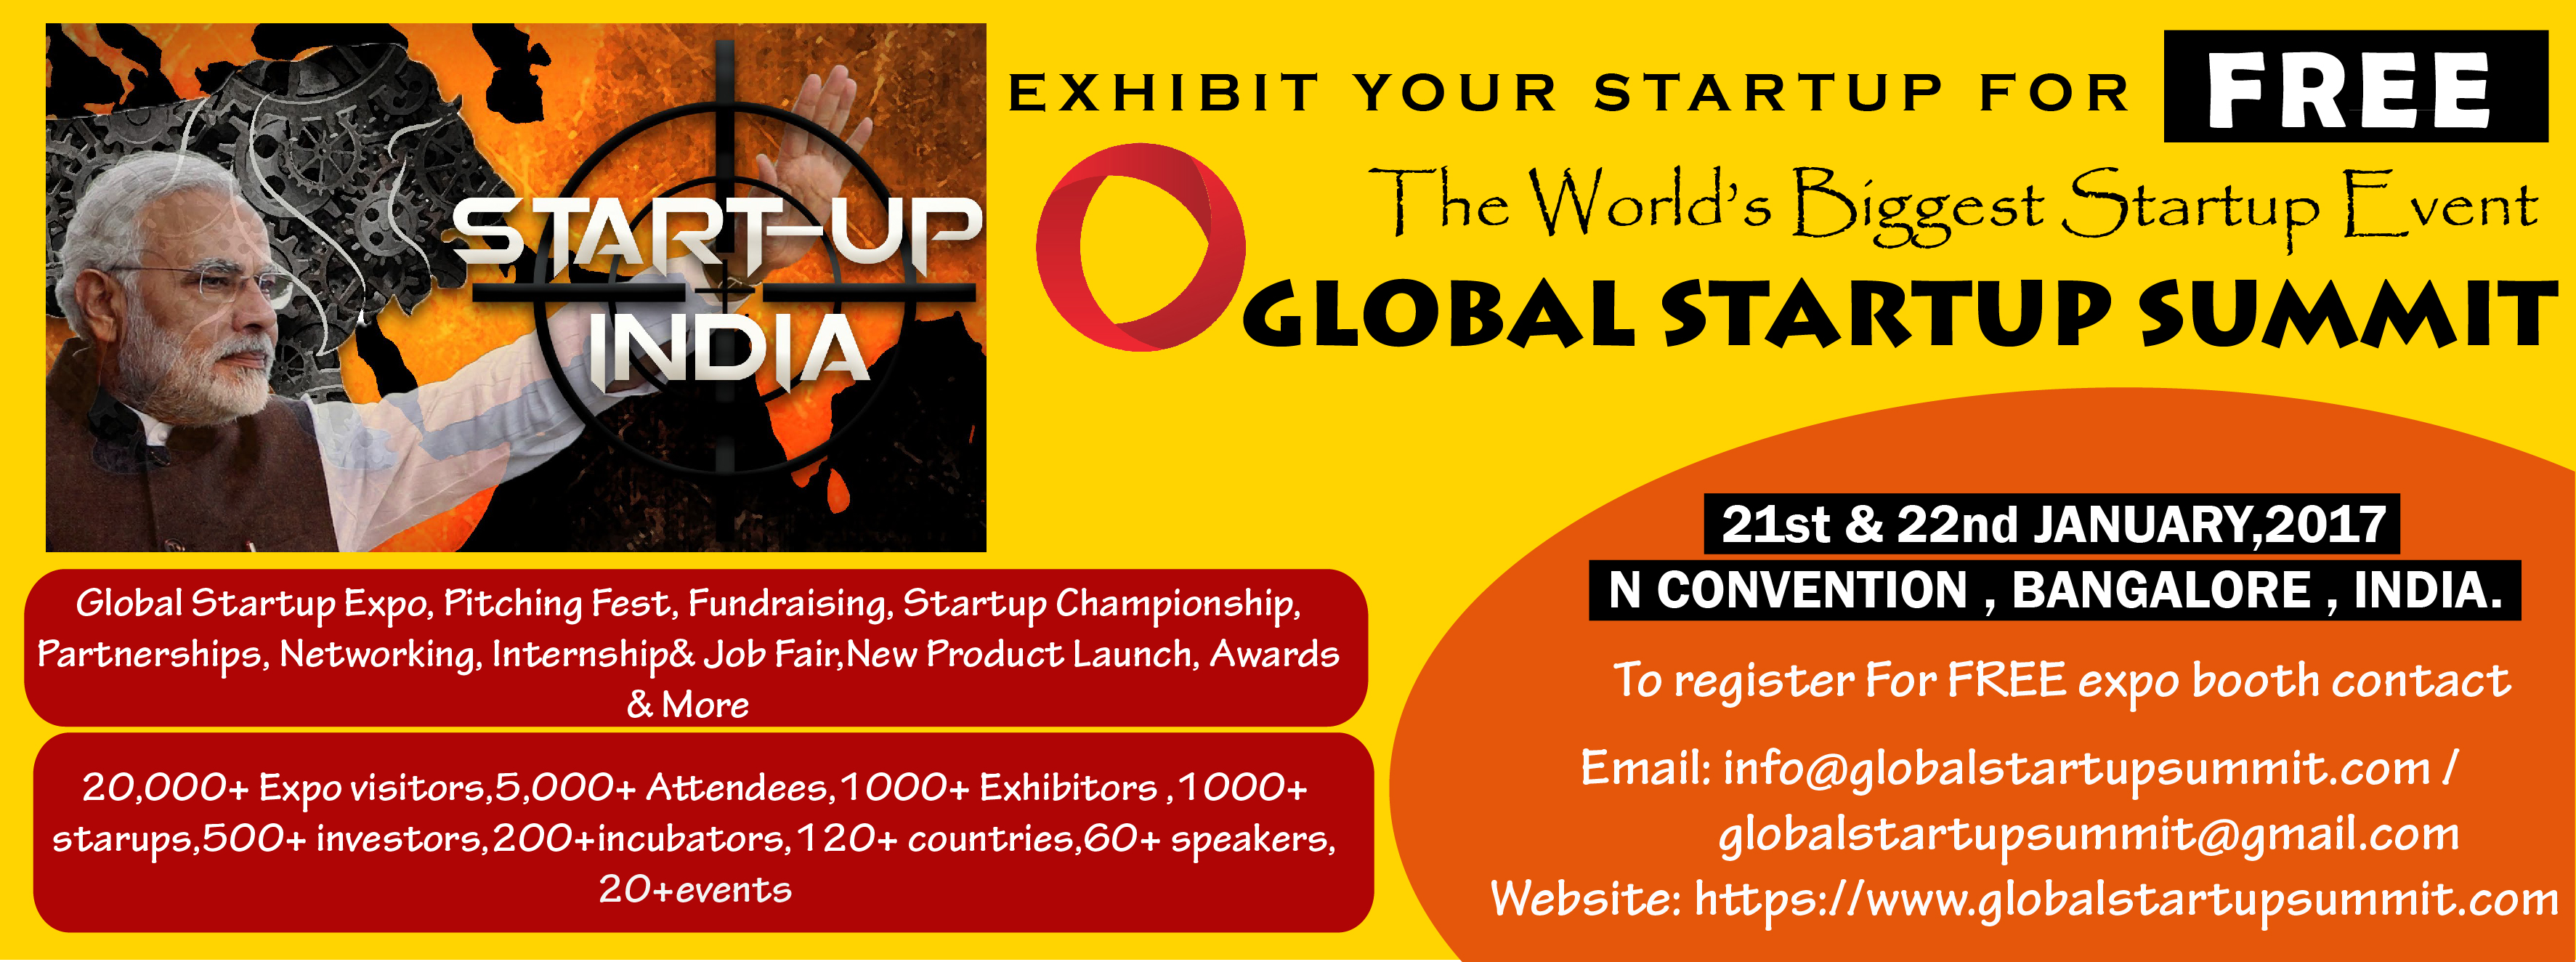 GLOBAL STARTUP SUMMIT(GSS)